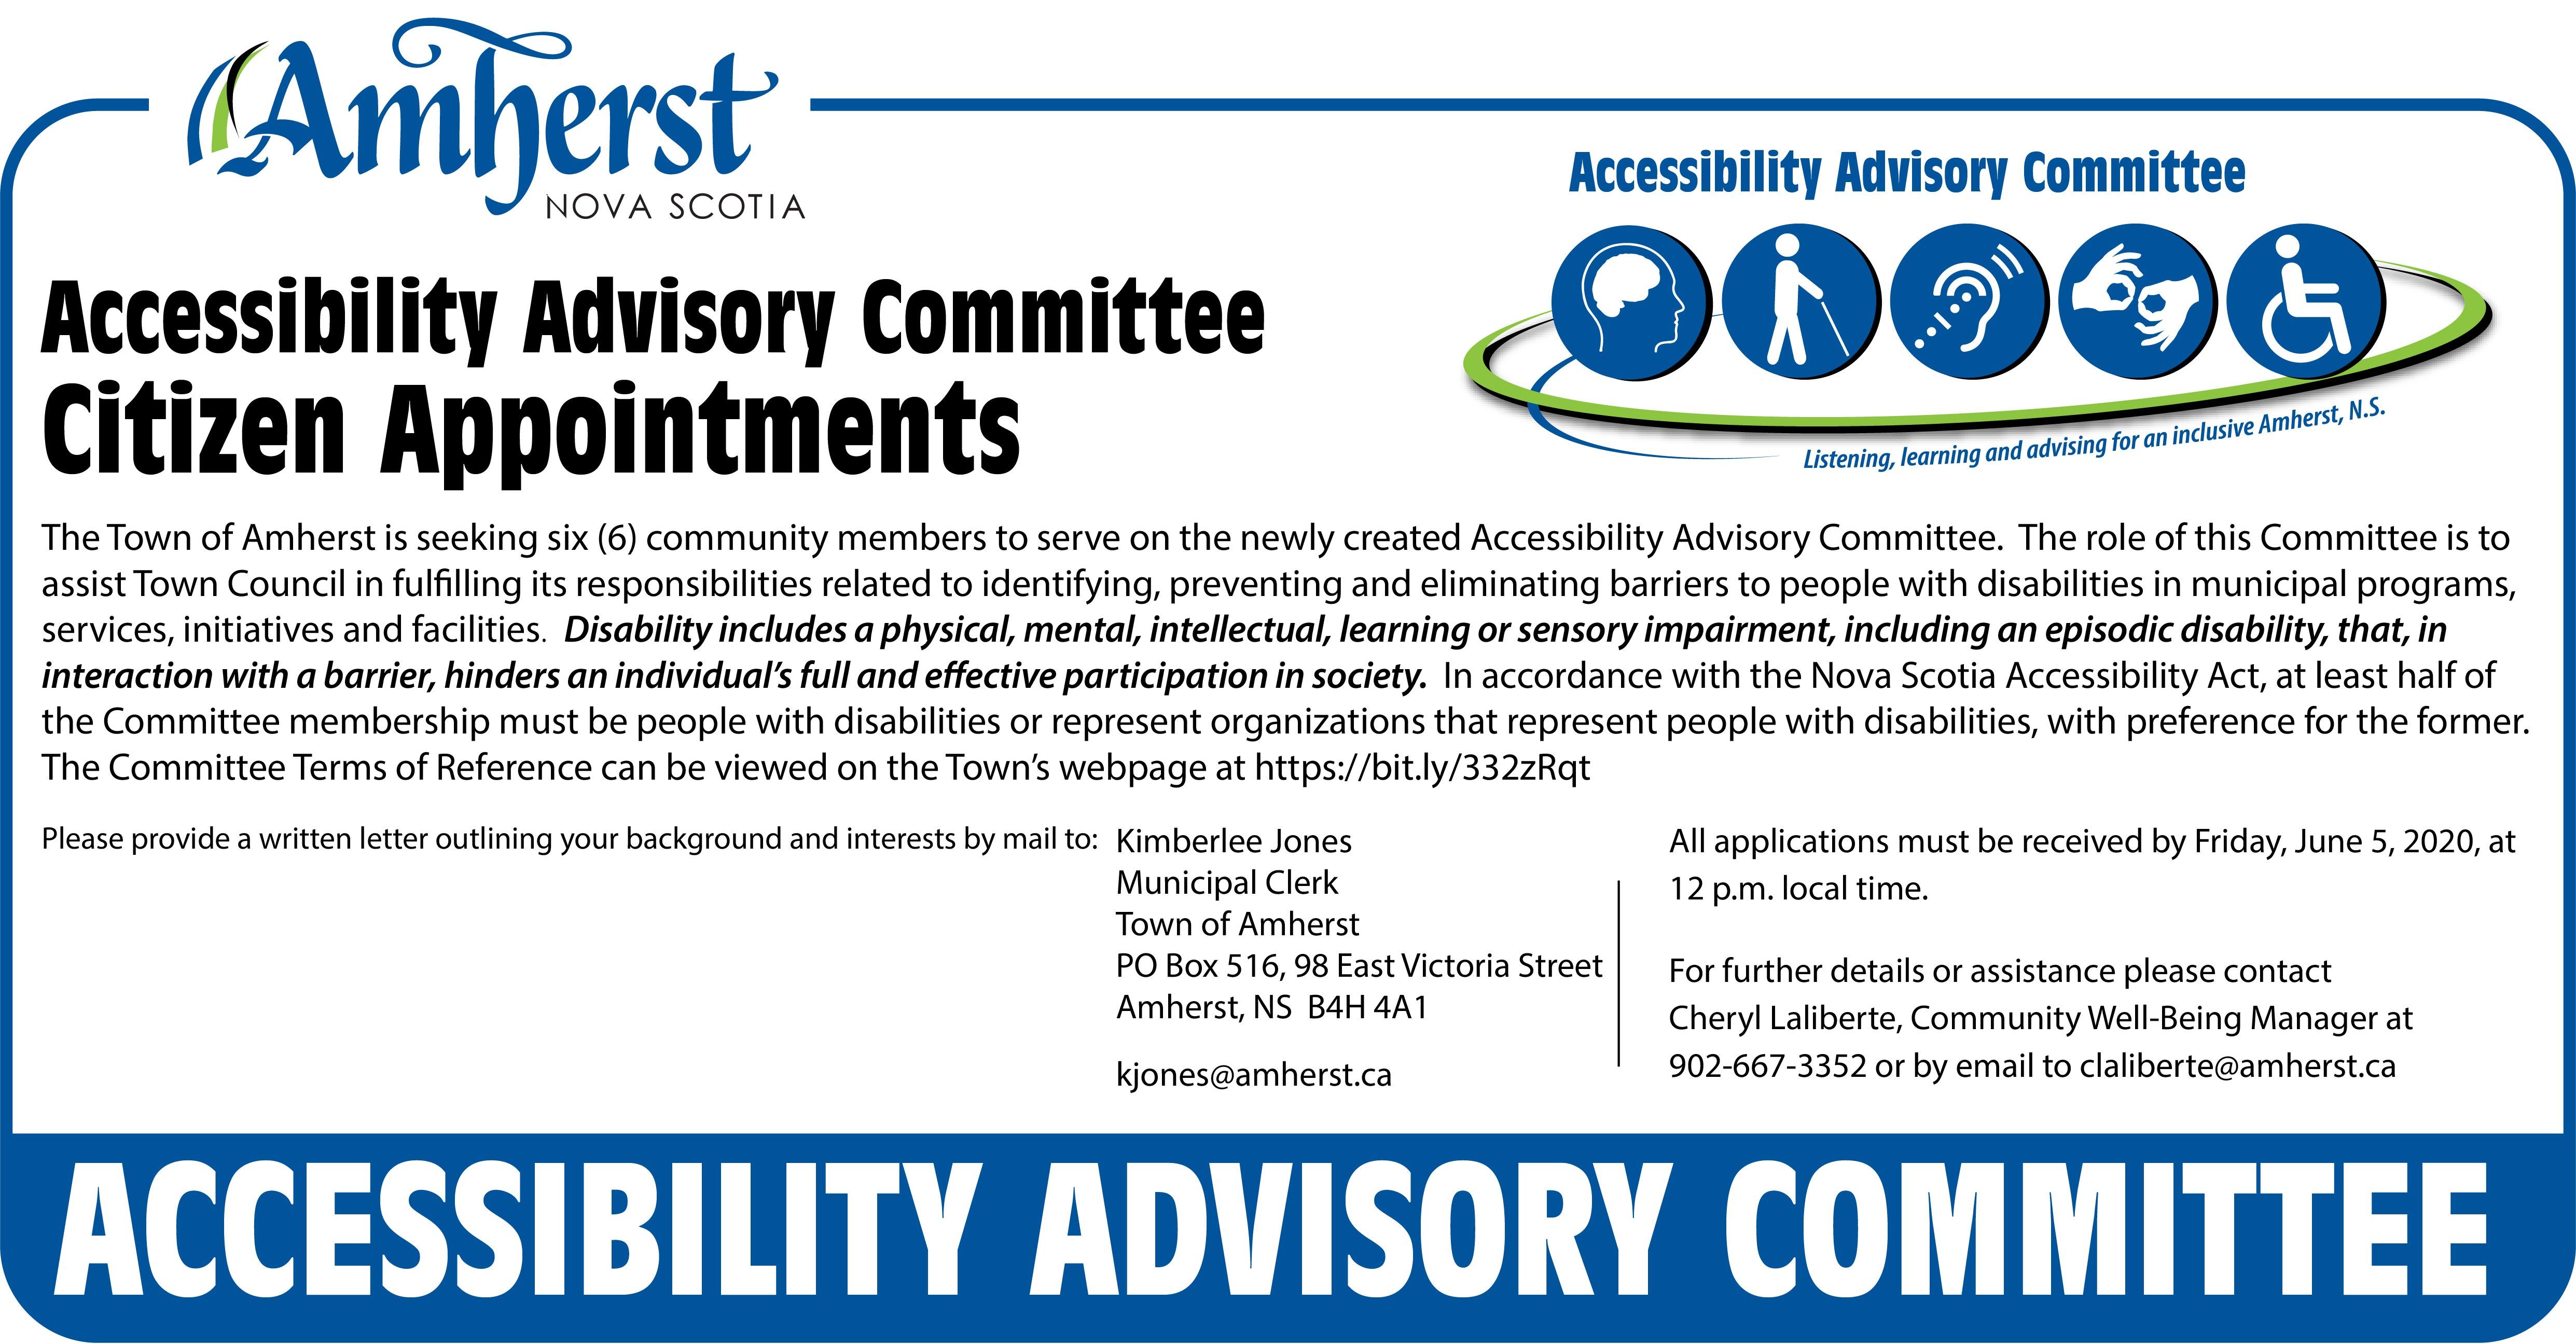 AccessibilityAdvisoryCommittee Graphic